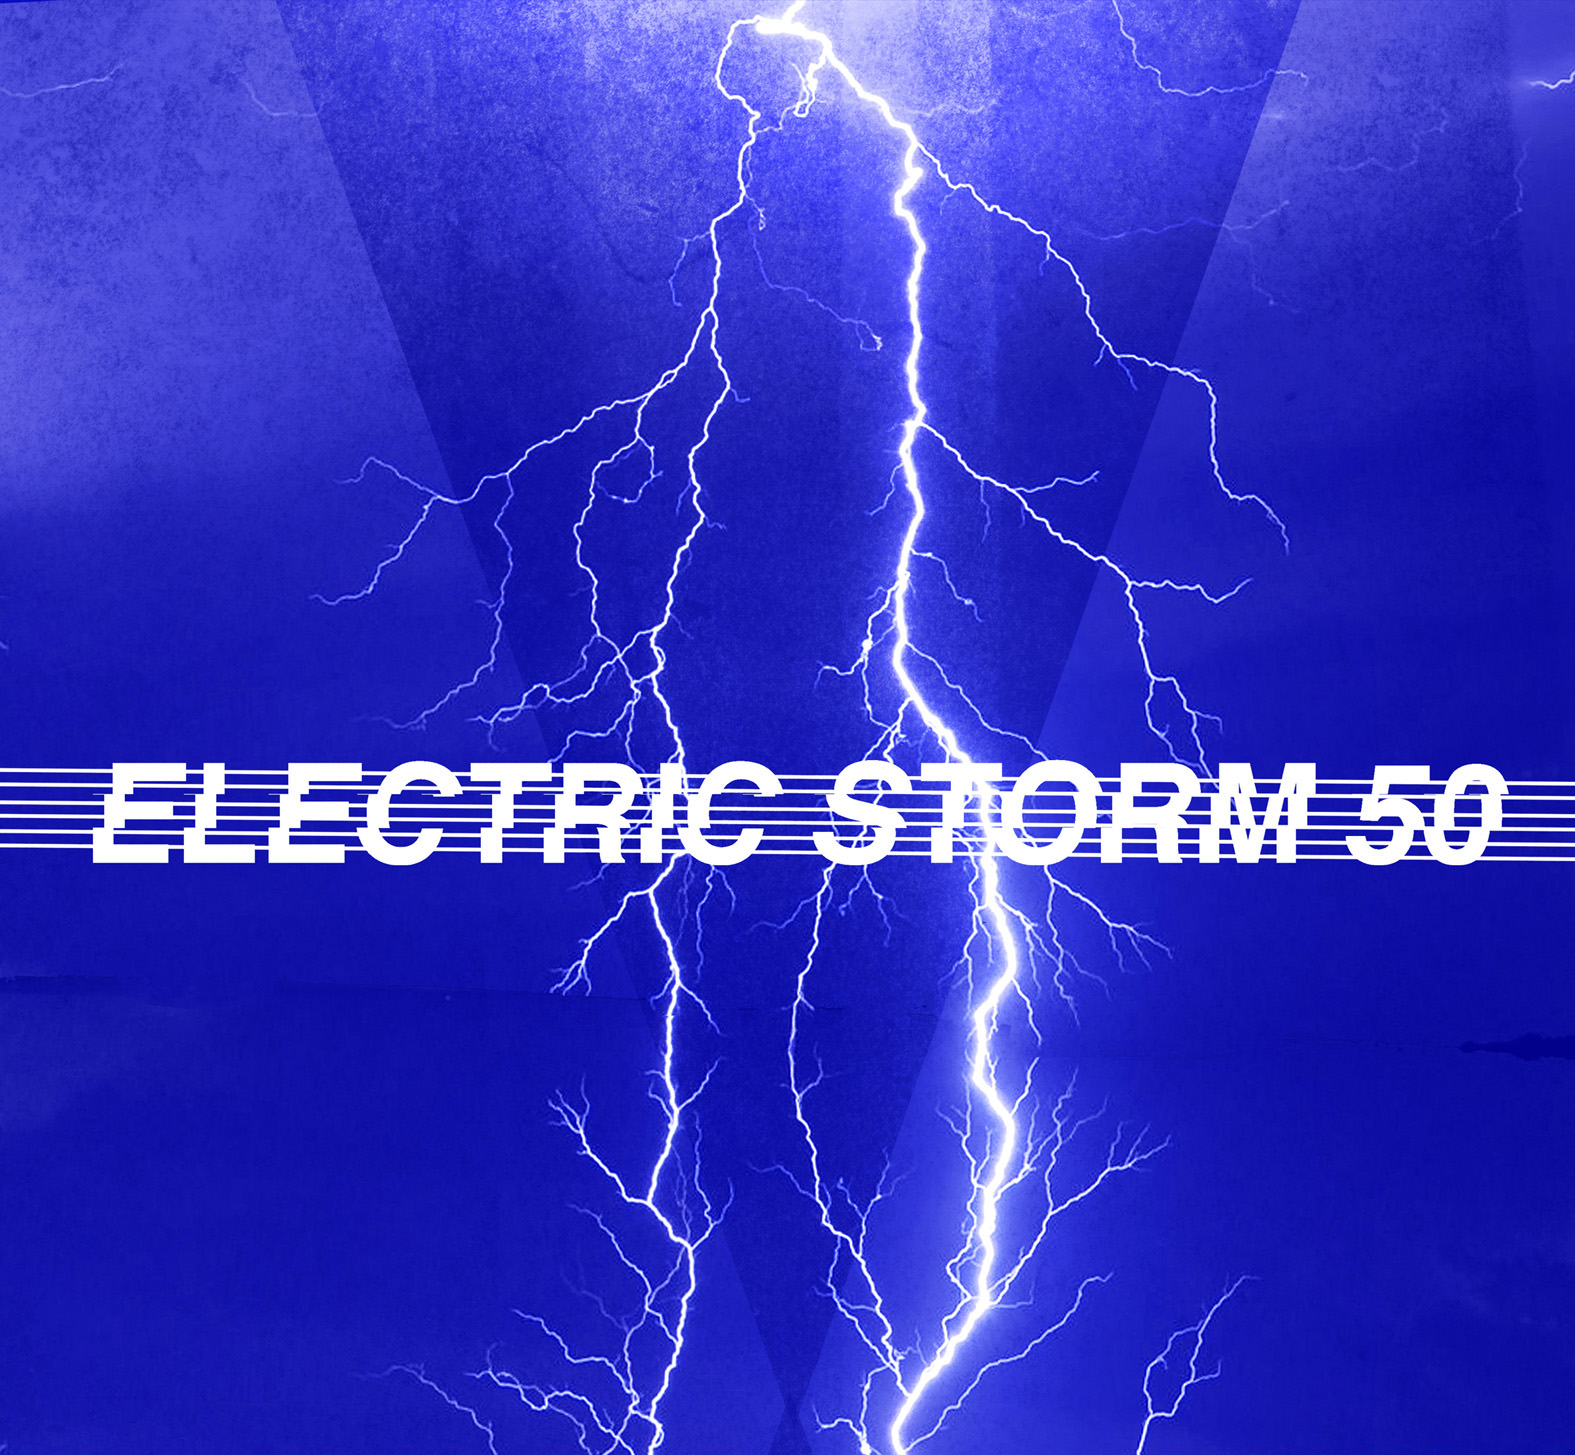 A flash of lightning crosses a blue sky and the words Electric Storm 50